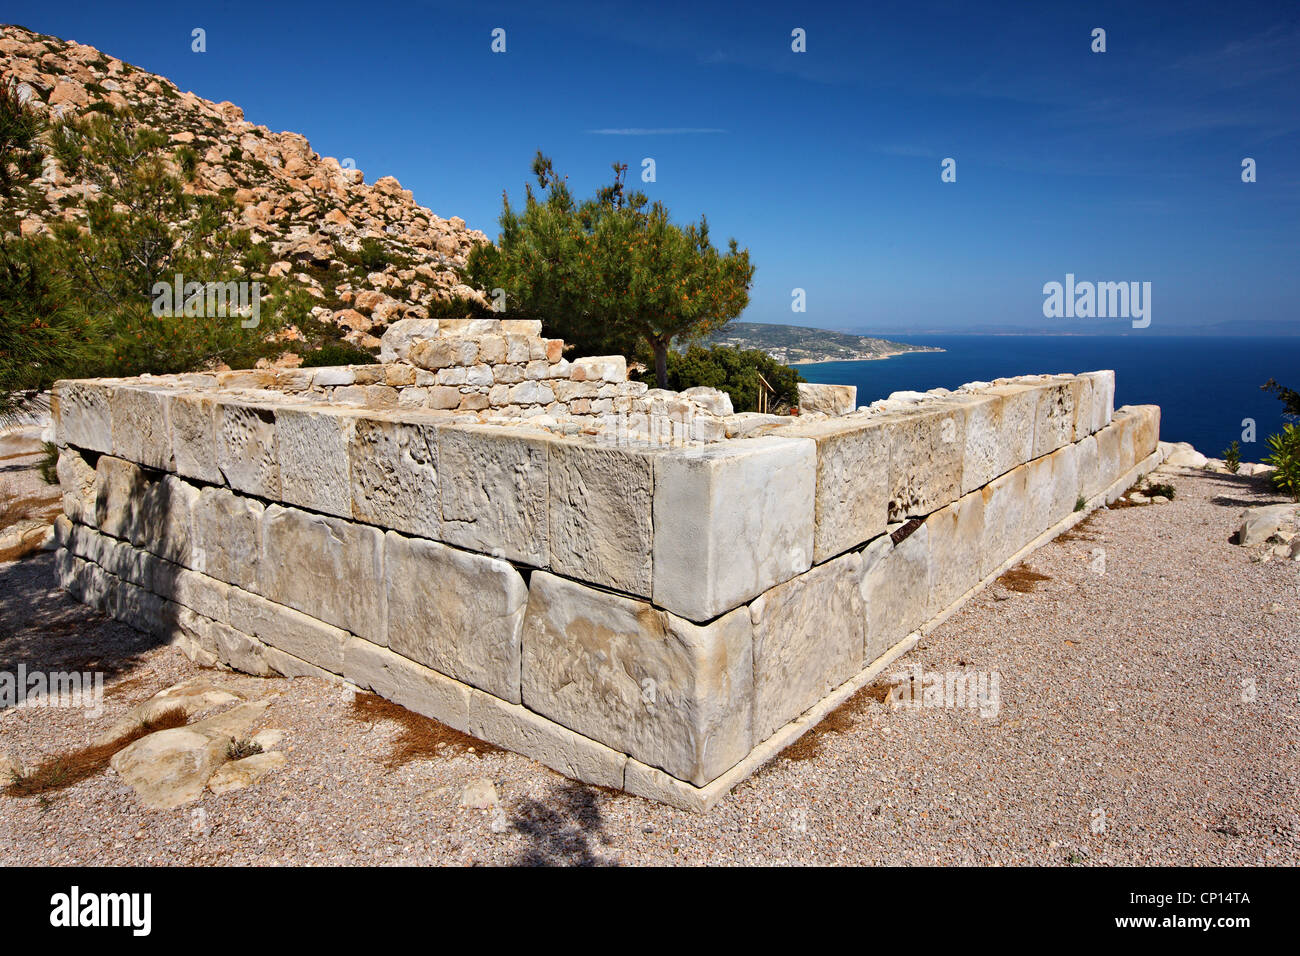 The ancient temple of Athena, at the archaeological site of Emboreios, Chios (or 'Hios') island, Northeast - Stock Image